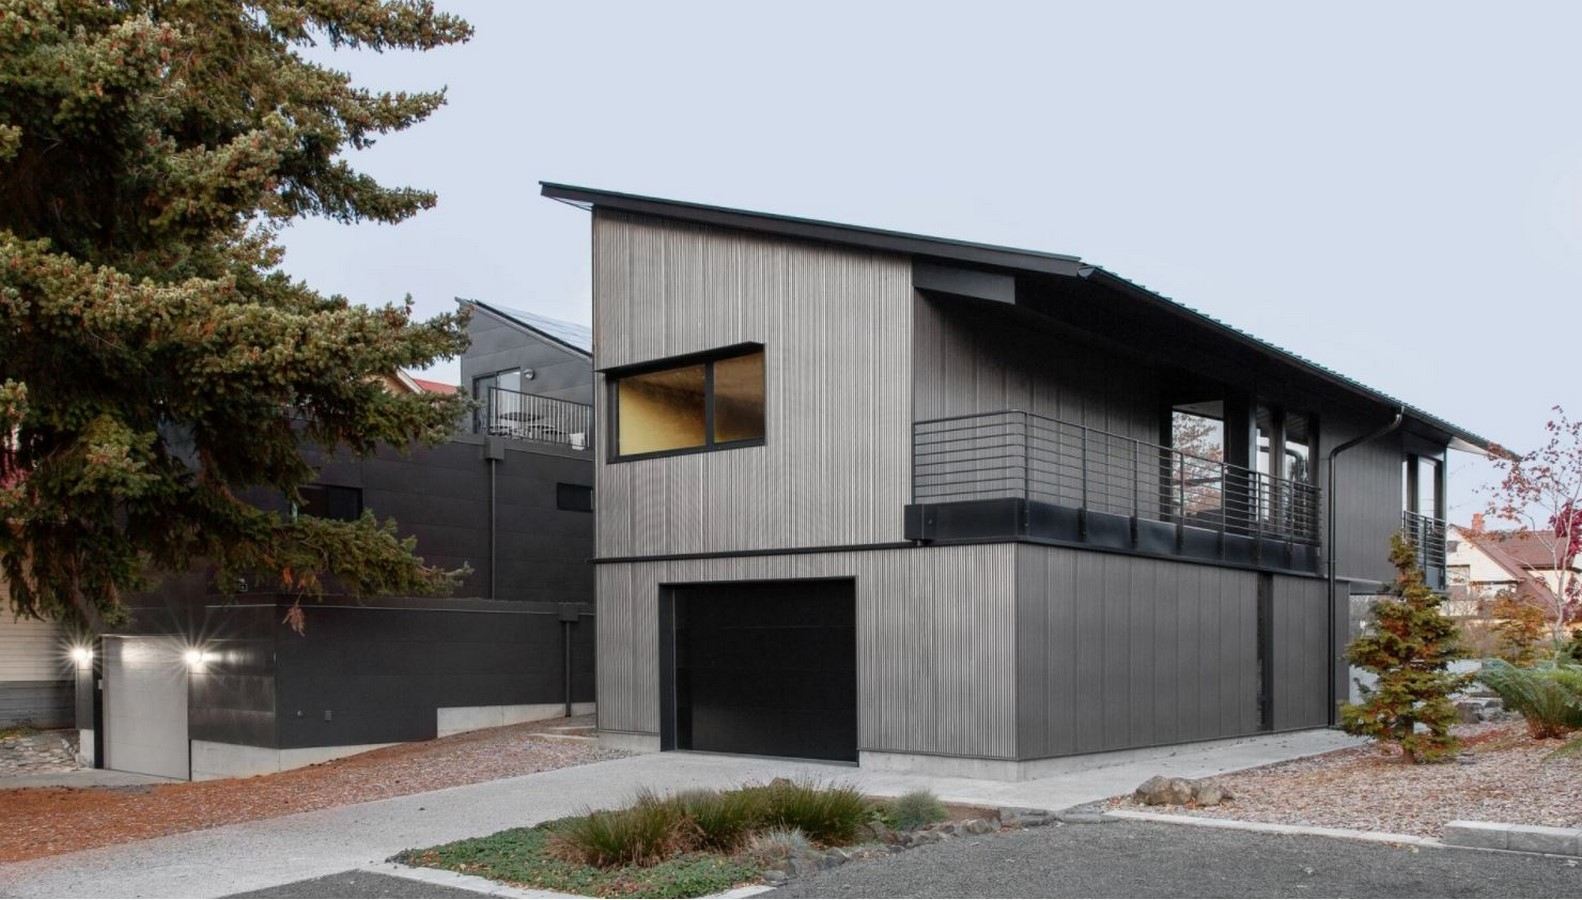 A net-zero compact home in Seattle is inspired by Shibui minimalism designed by SHED Architecture and Design - Sheet1